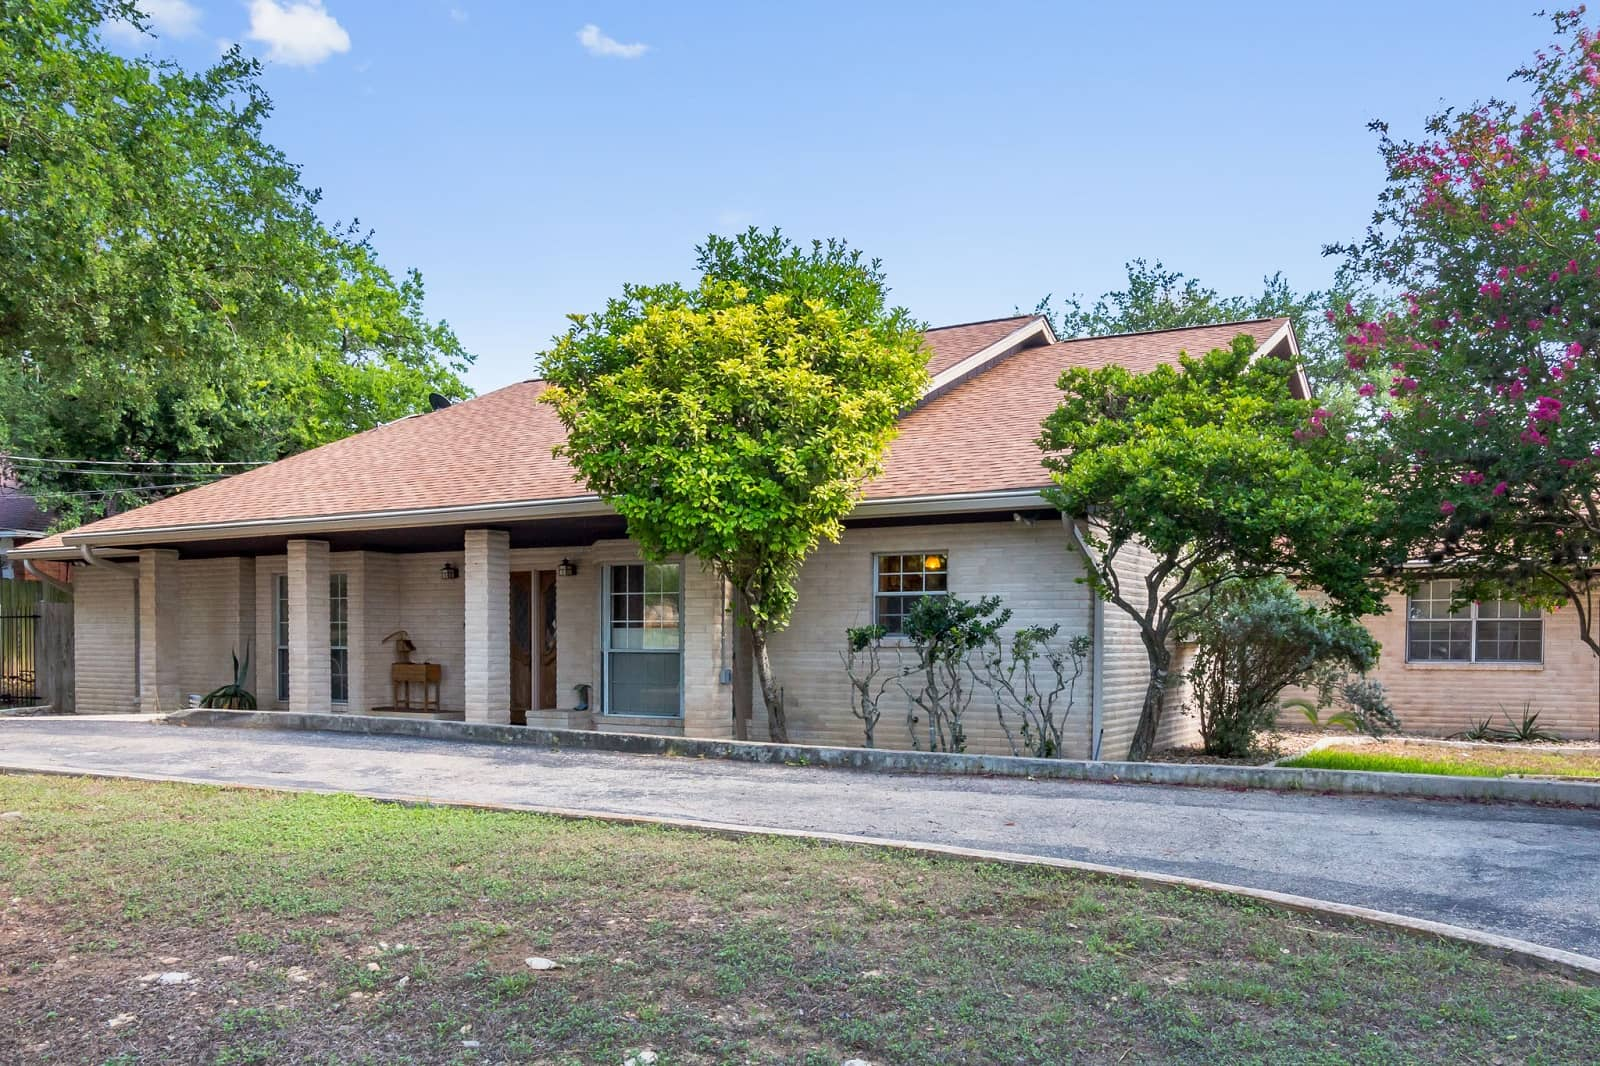 Real Estate Photography in San Marcos - TX - Side View